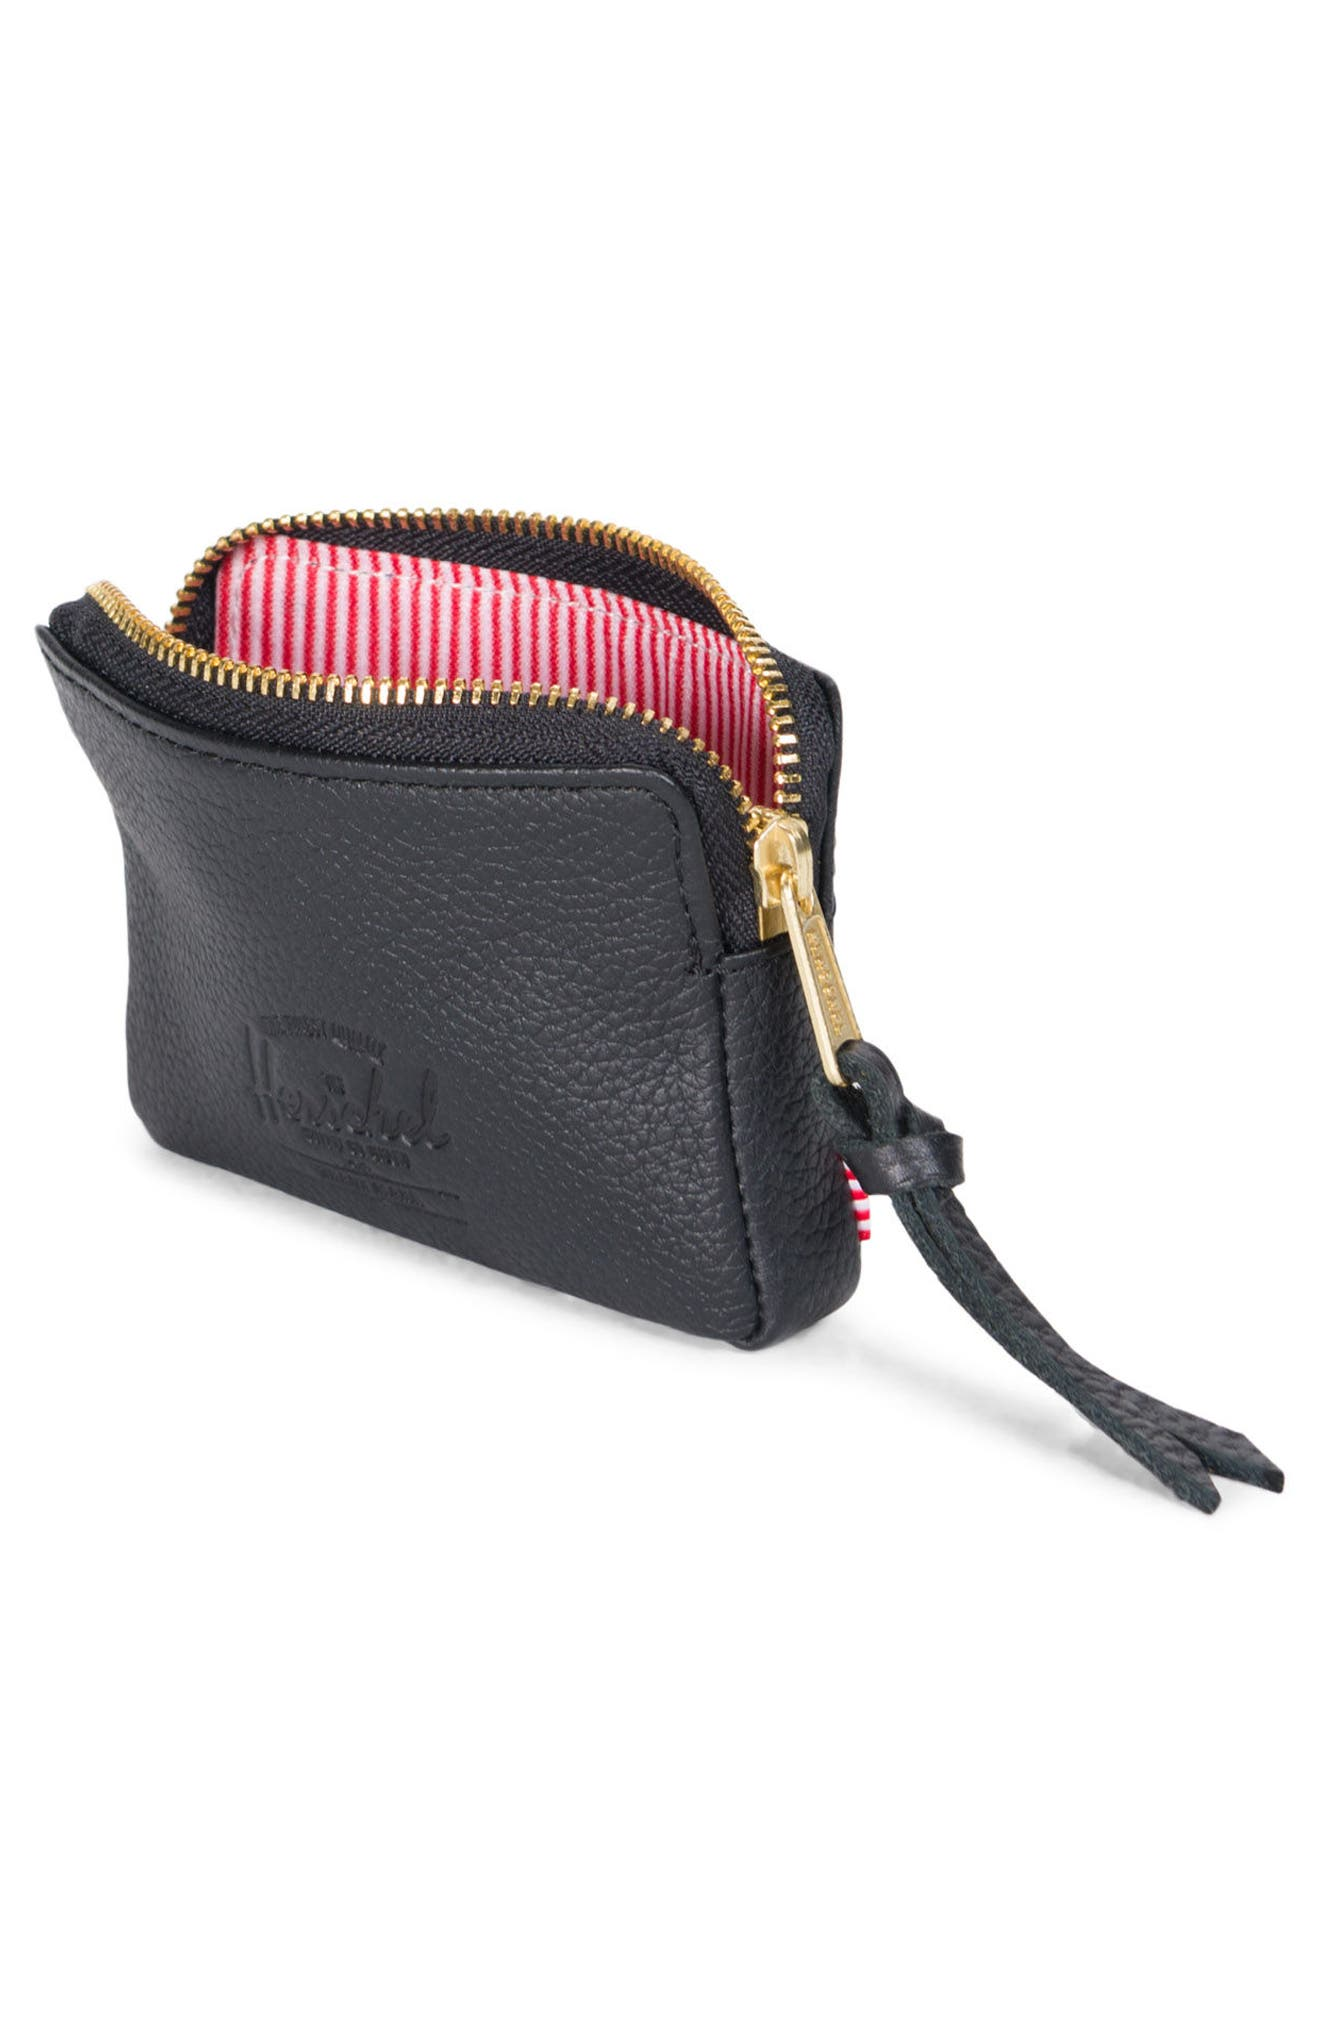 Leather Zip Pouch,                             Alternate thumbnail 3, color,                             Black Pebbled Leather